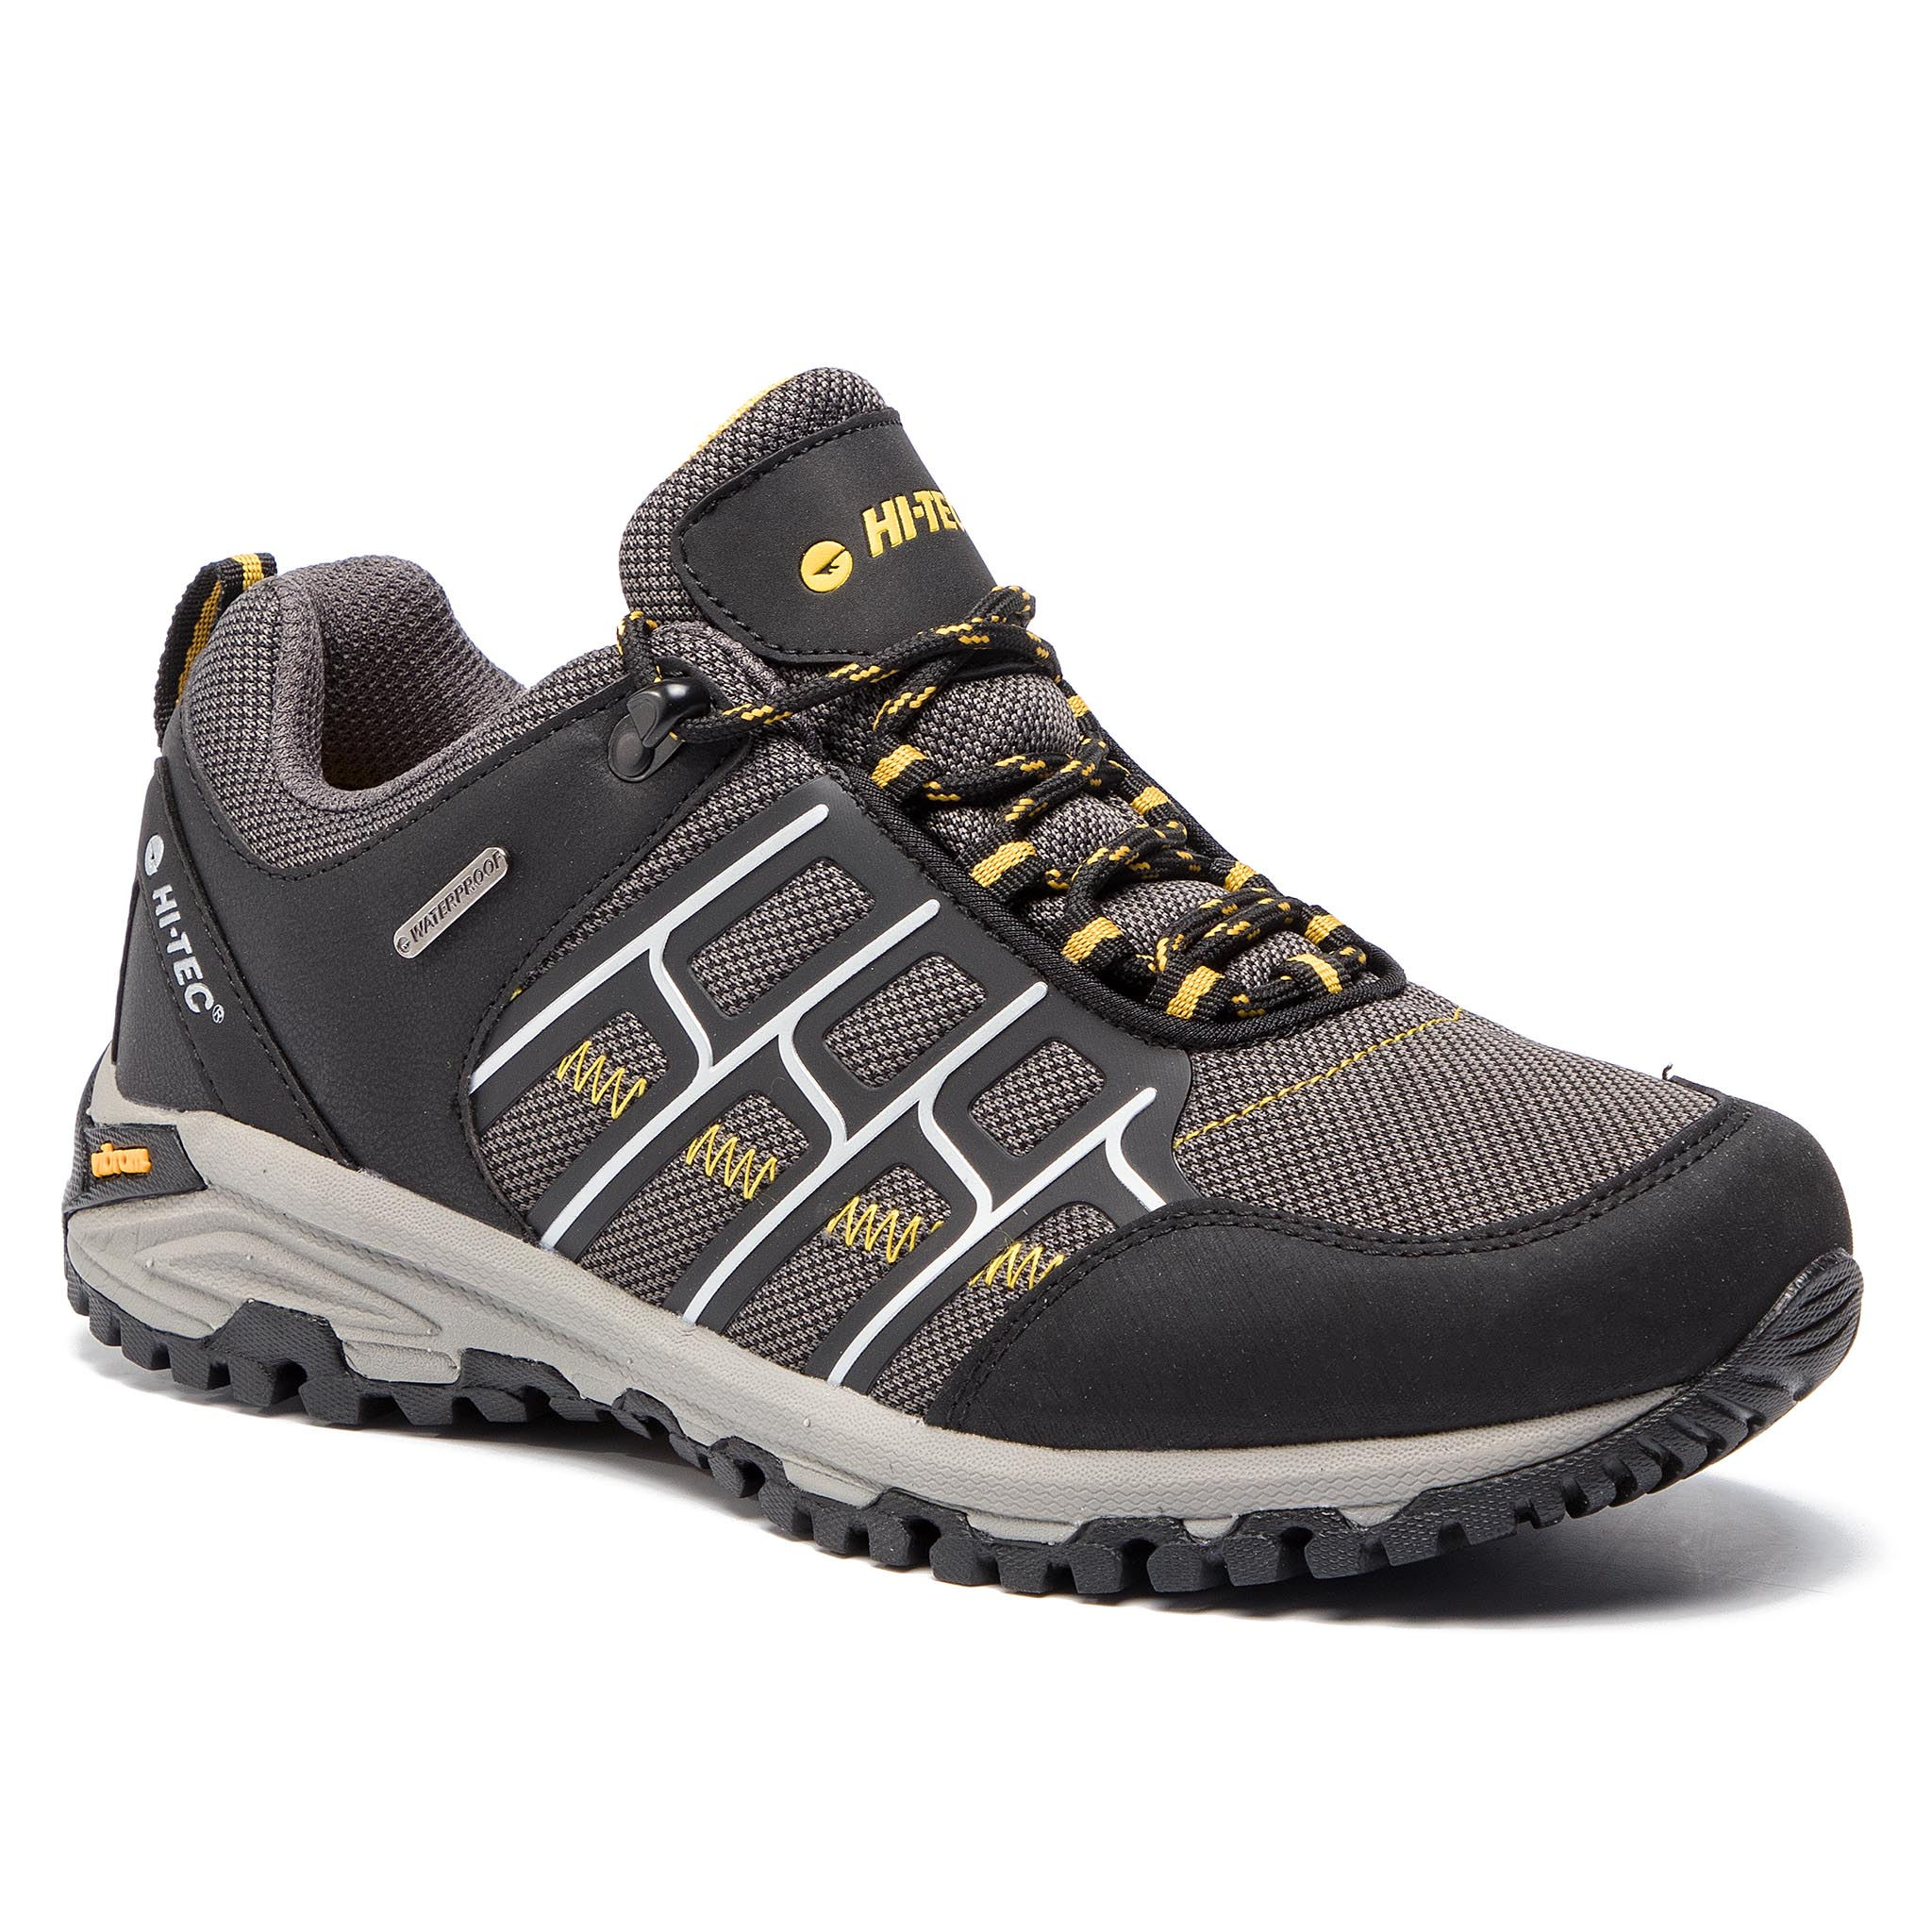 Trekkings Hi-Tec - Mercen Wp Avs-Ss19-Ht-01-Q2 Black/Dark Grey/Corn imagine epantofi.ro 2021